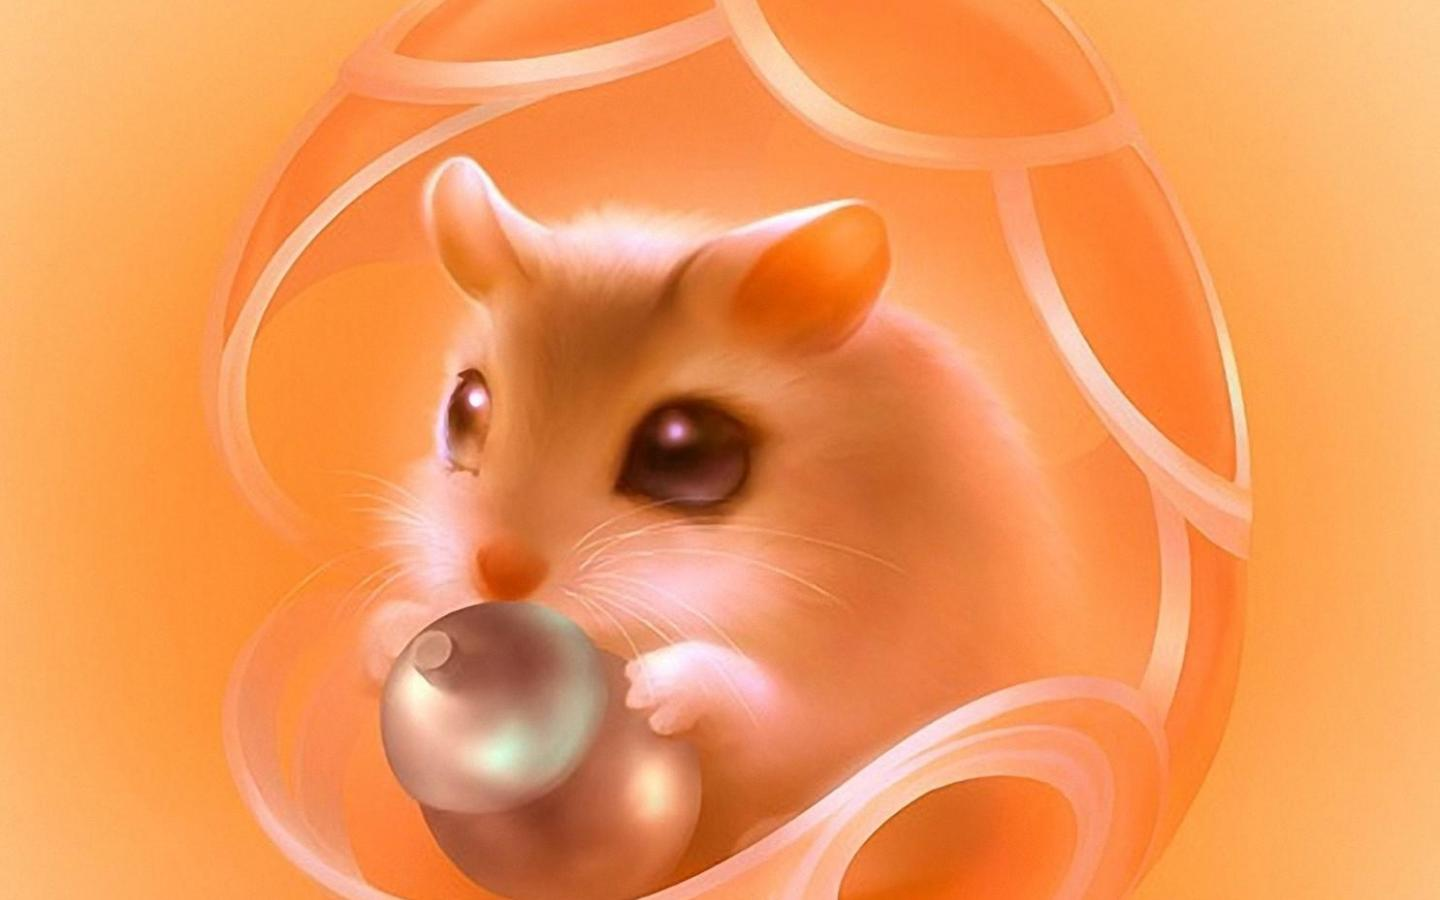 Hamster   159014   High Quality and Resolution Wallpapers on 1440x900